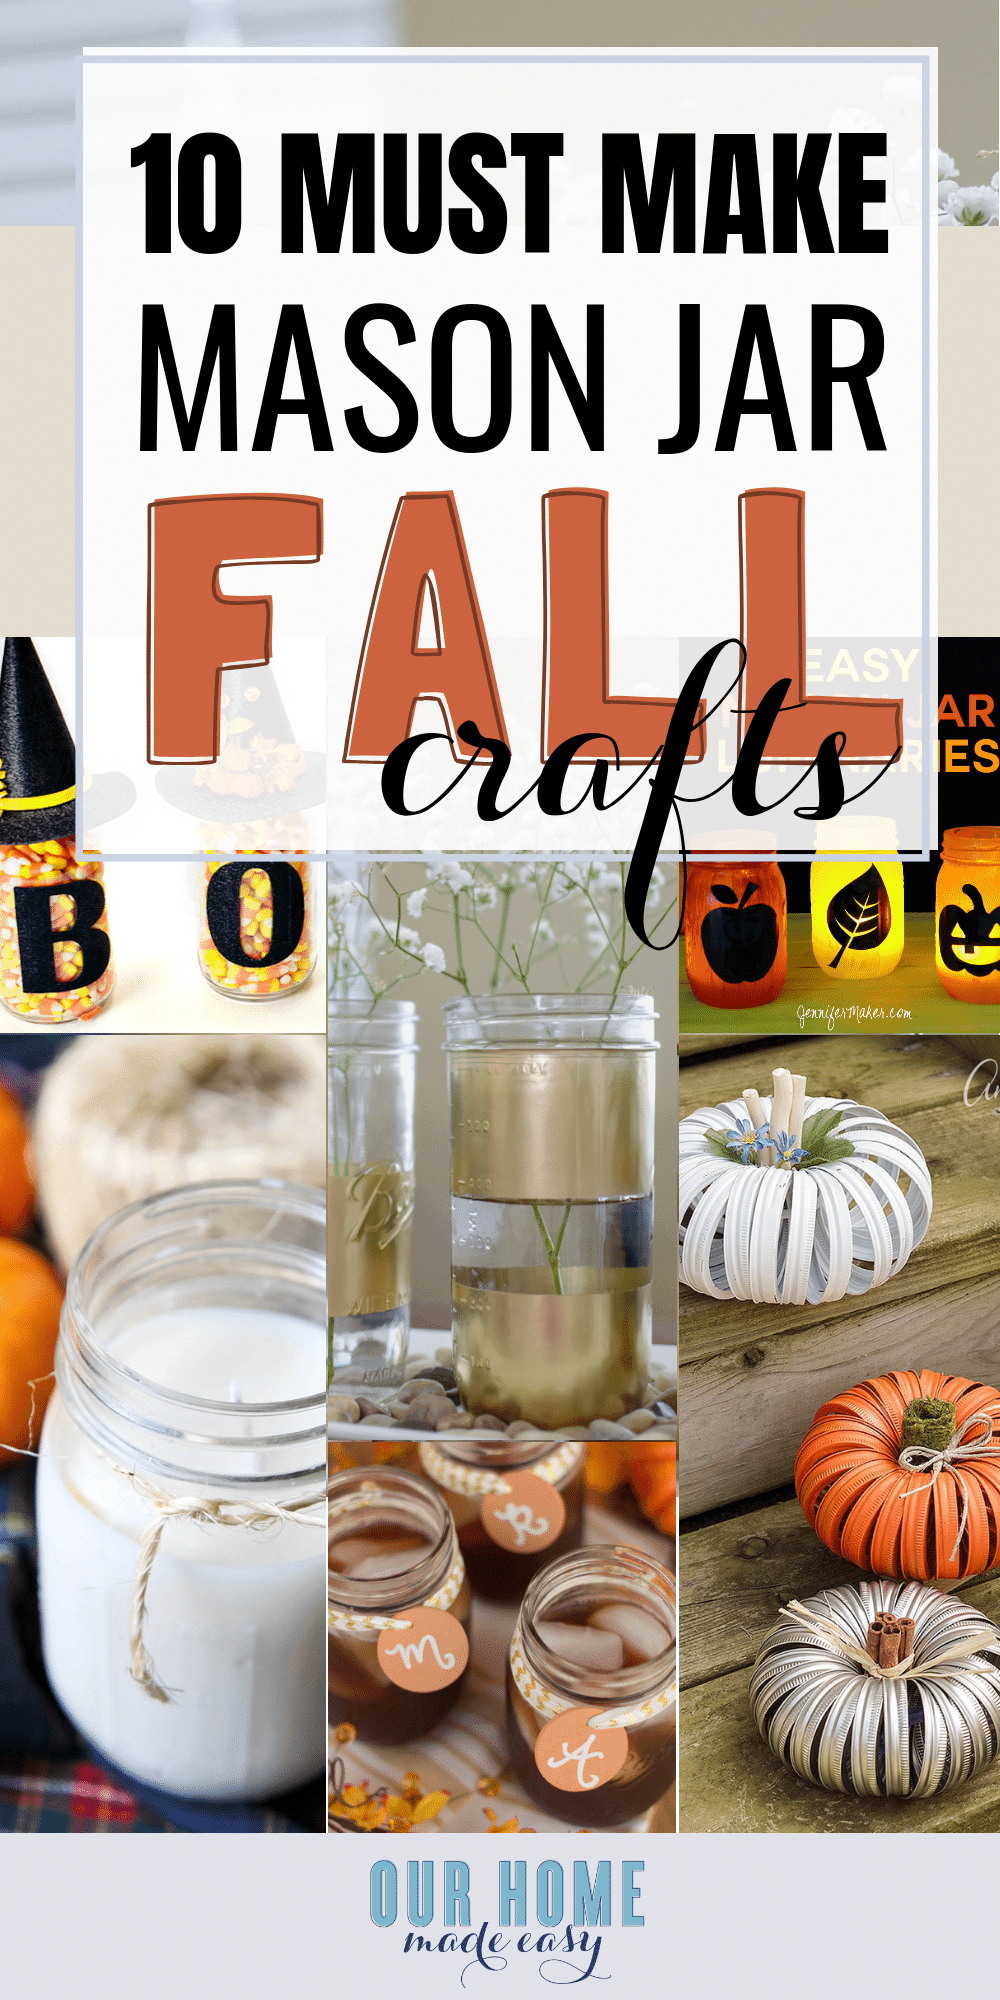 These 10 easy mason jar crafts are perfect for Fall! They will add cozy charm to your home and they won't take long for you to make yourself. #fallhome #homedecor #fall #masonjars